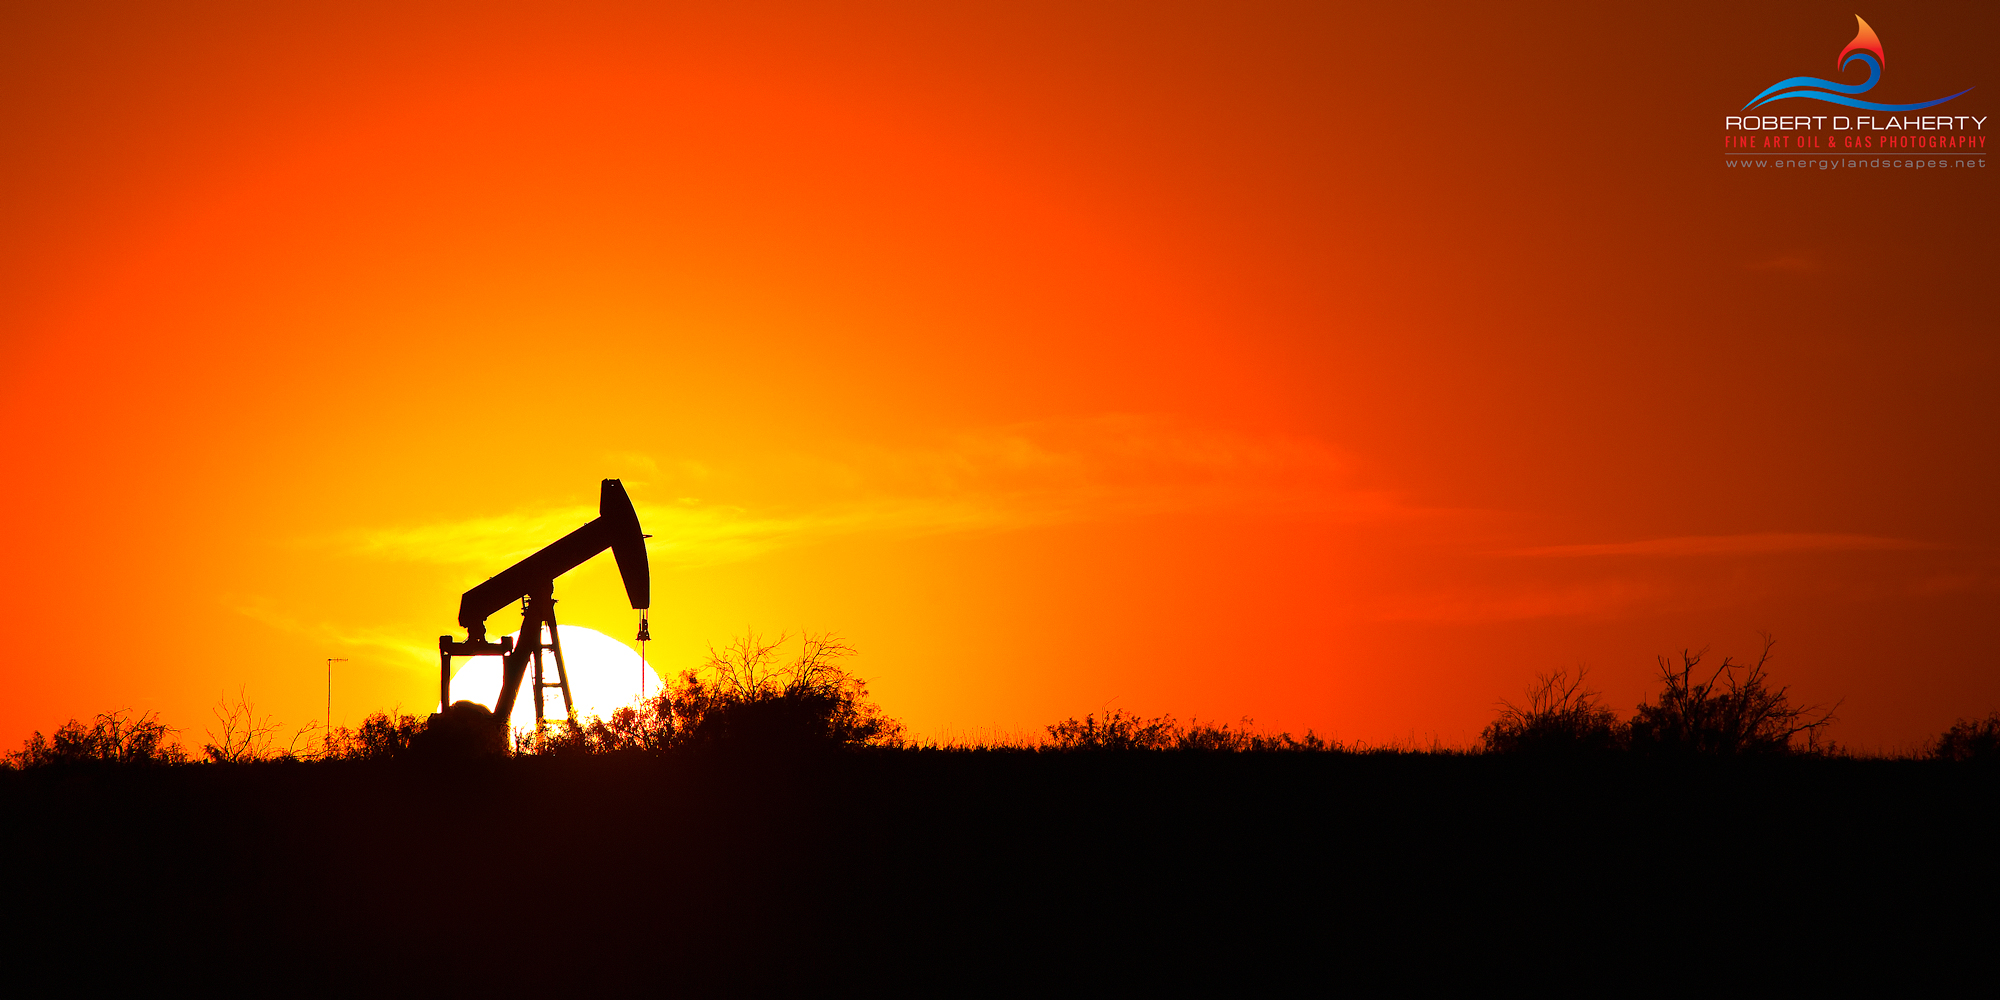 Pumpjack, pump jack, pumping unit, orange, orange sky, summer, sunset, Devon Energy, Oklahoma, photo